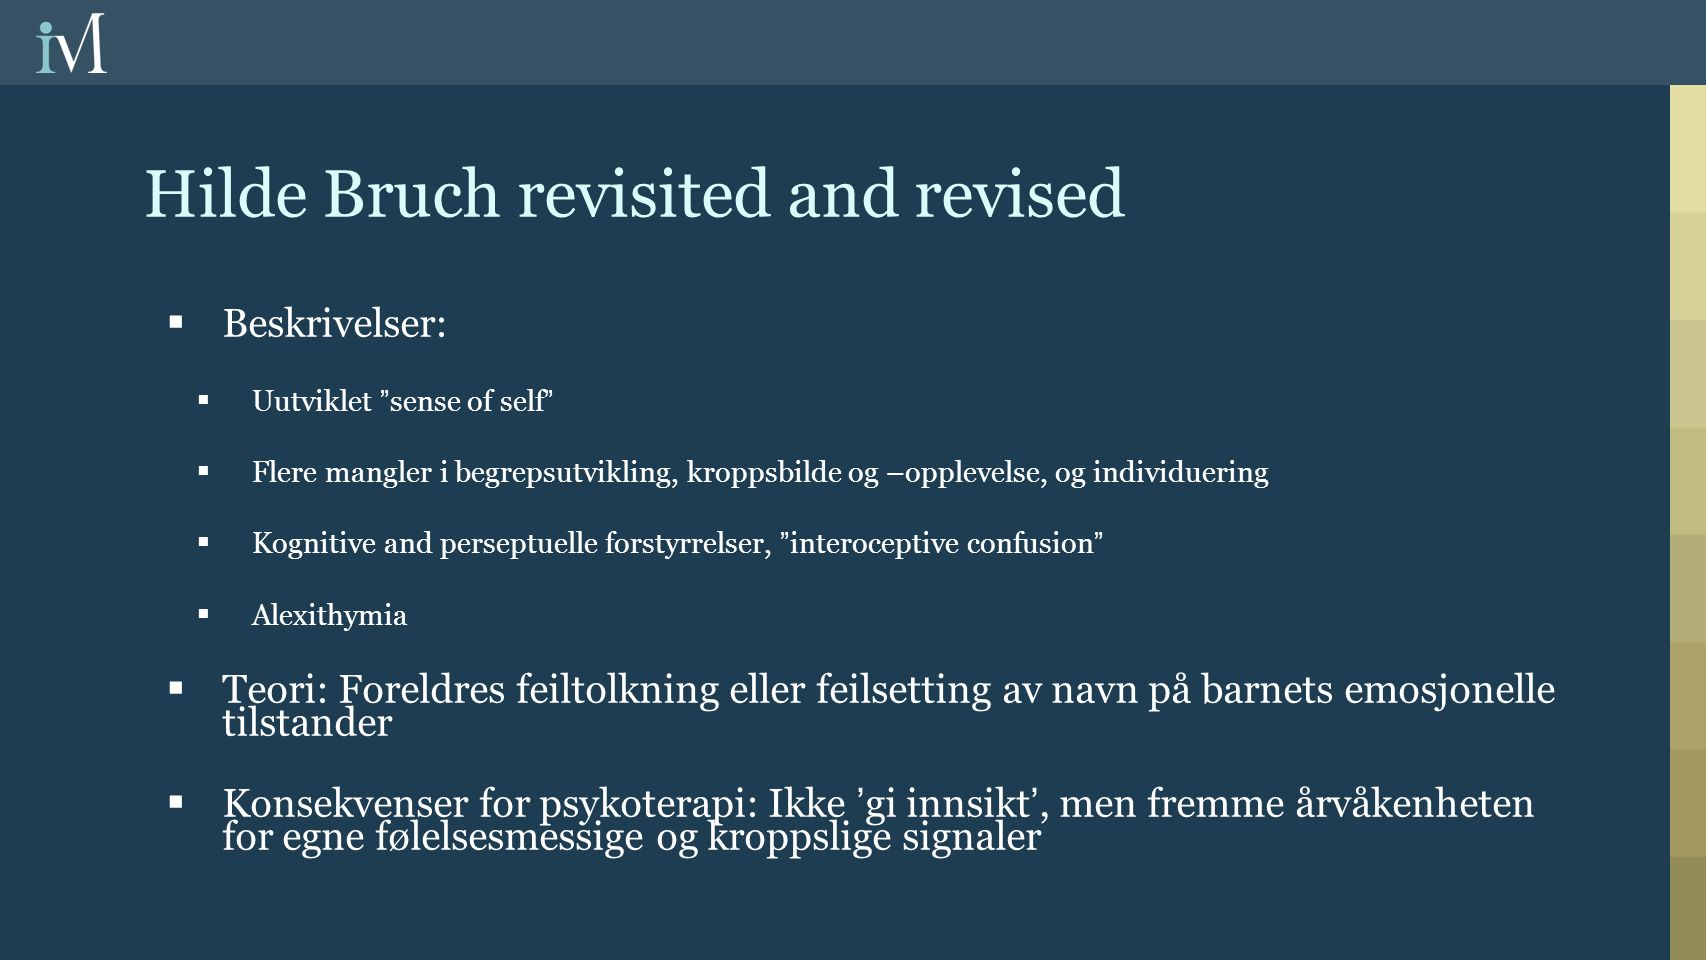 Hilde Bruch revisited and revised